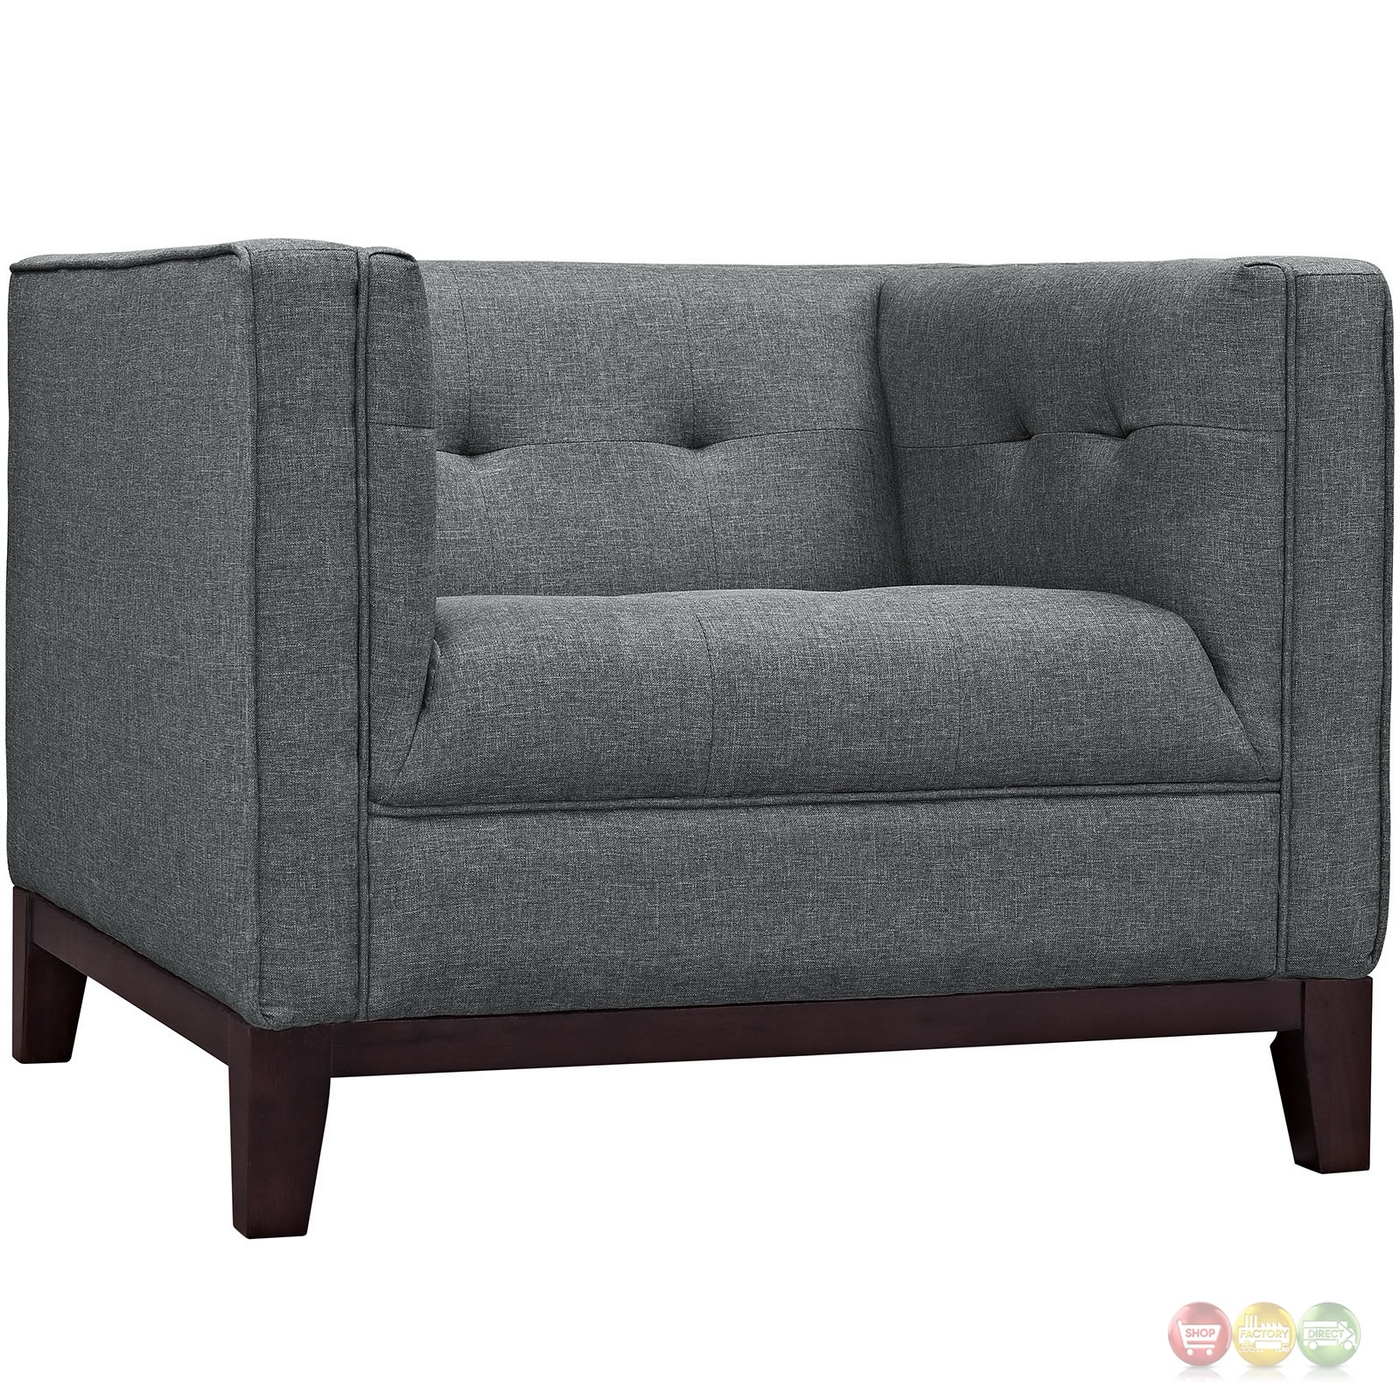 Serve modern 2pc upholstered button tufted sofa armchair for Tufted couch set